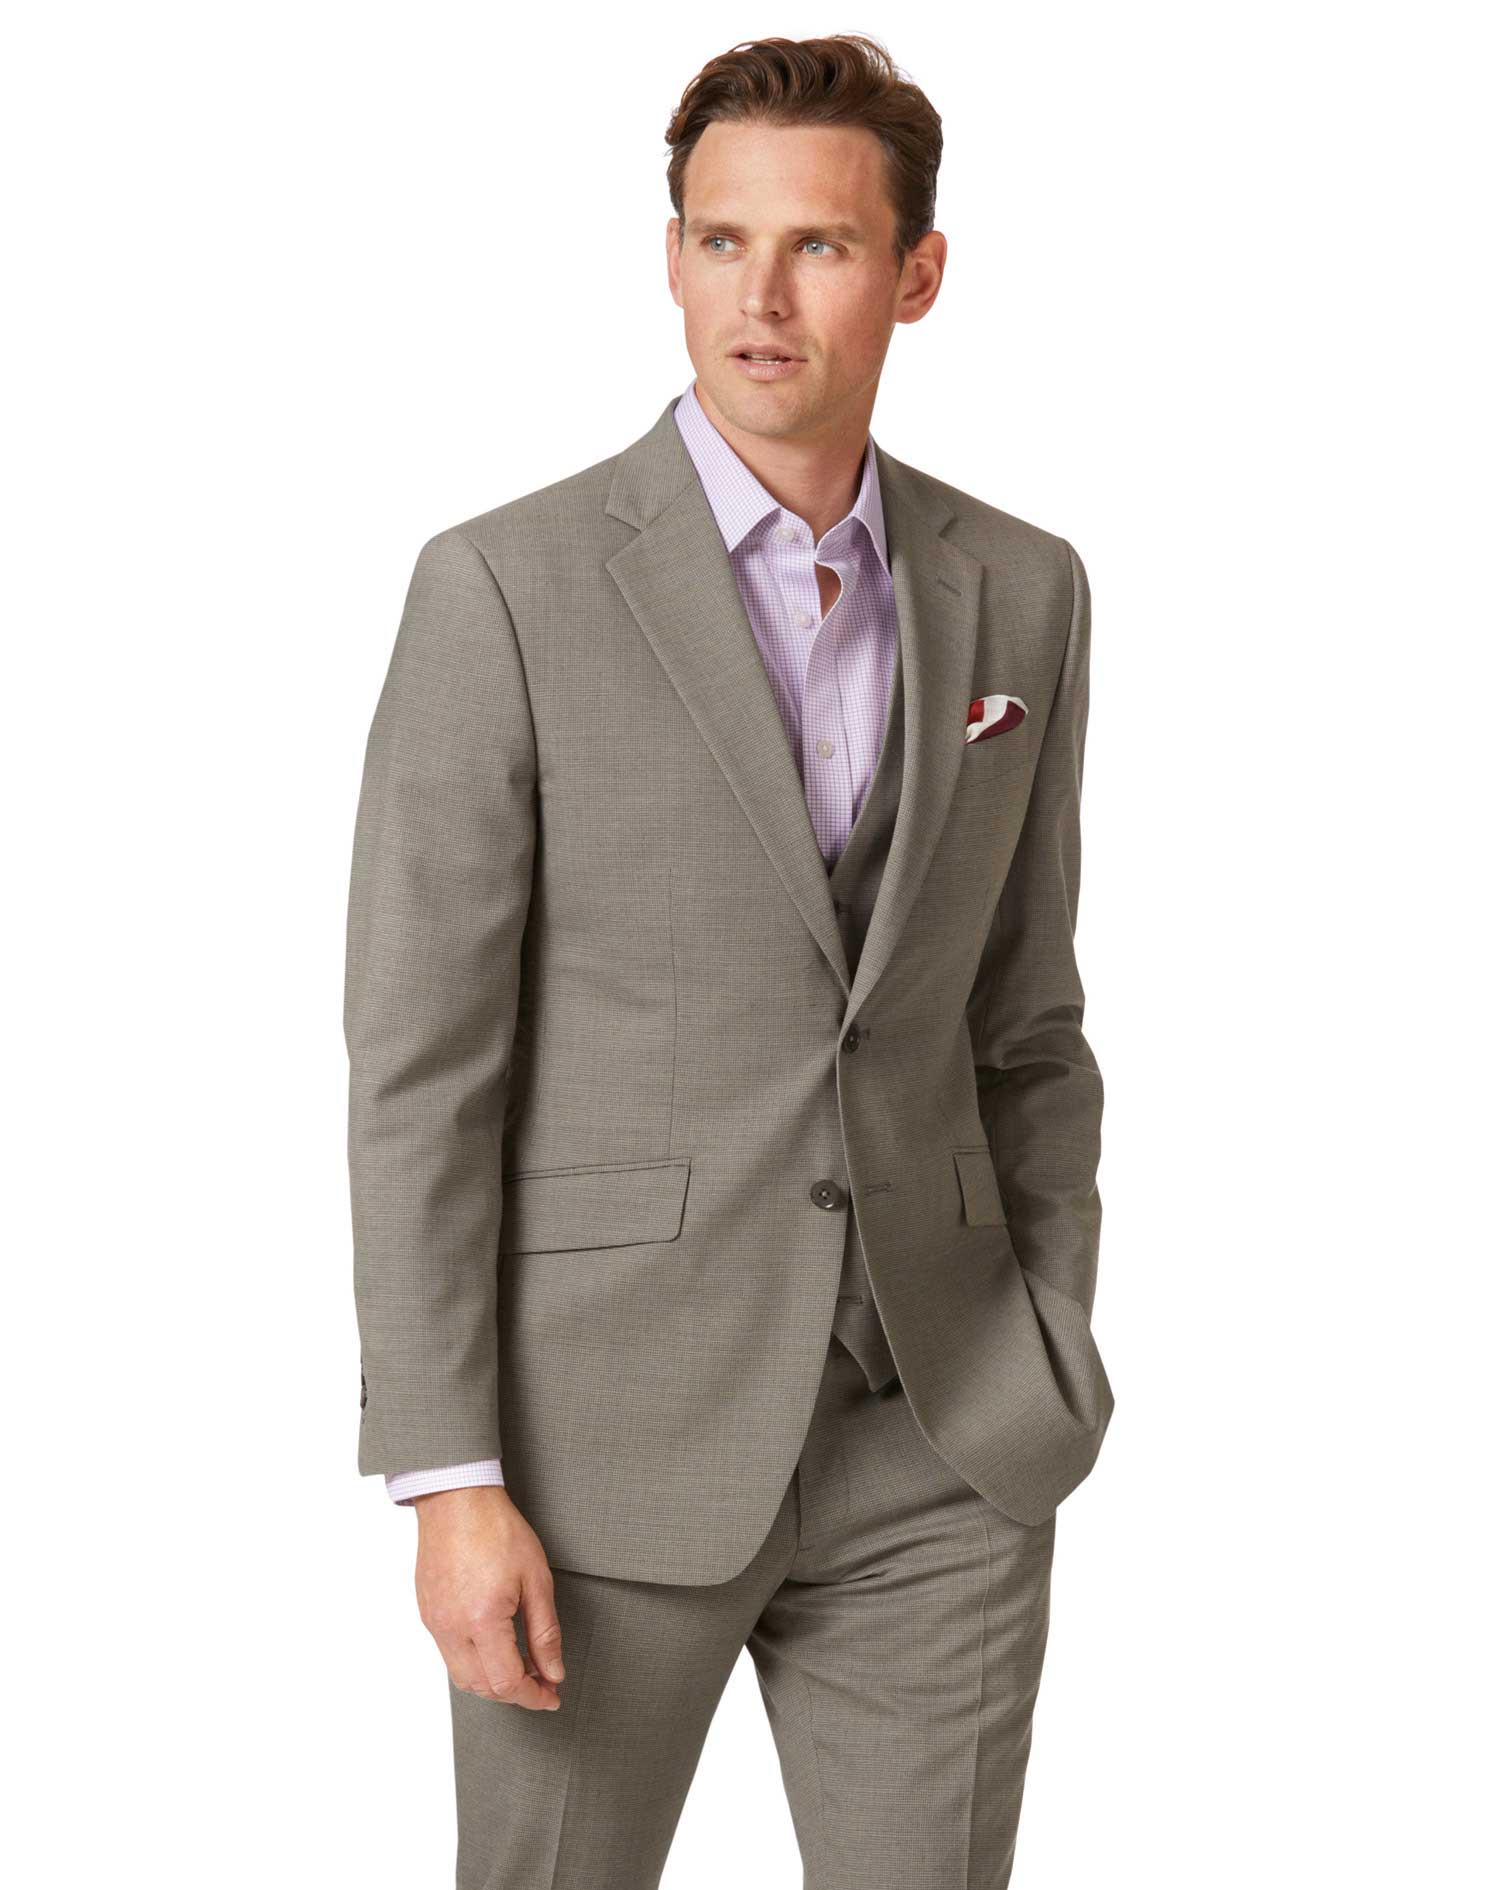 Natural Puppytooth Slim Fit Panama Business Suit Wool Jacket Size 38 Regular by Charles Tyrwhitt